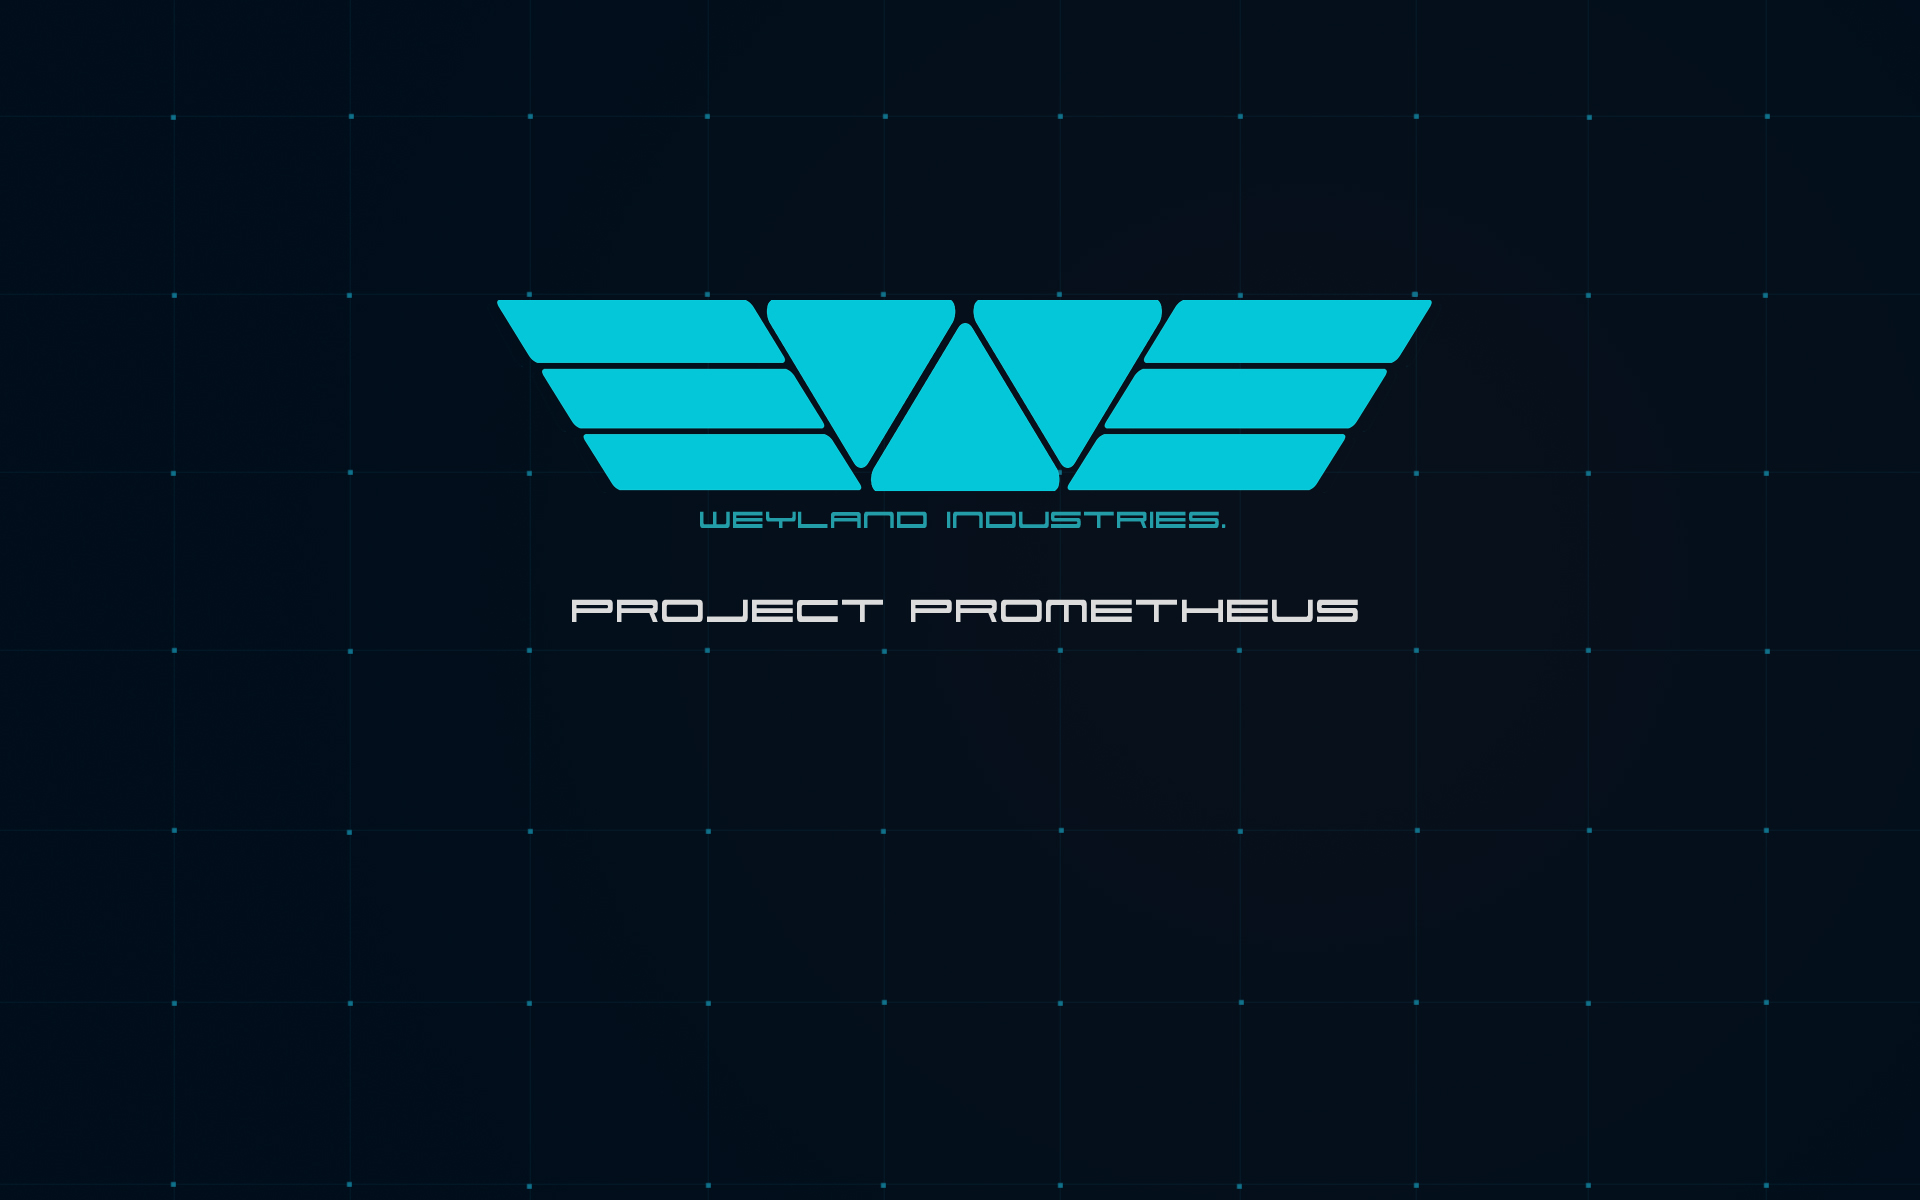 project prometheus Not-for-profit association dedicated to the democratization of the airwaves through the proliferation of non-commercial, community based, micropower stations.